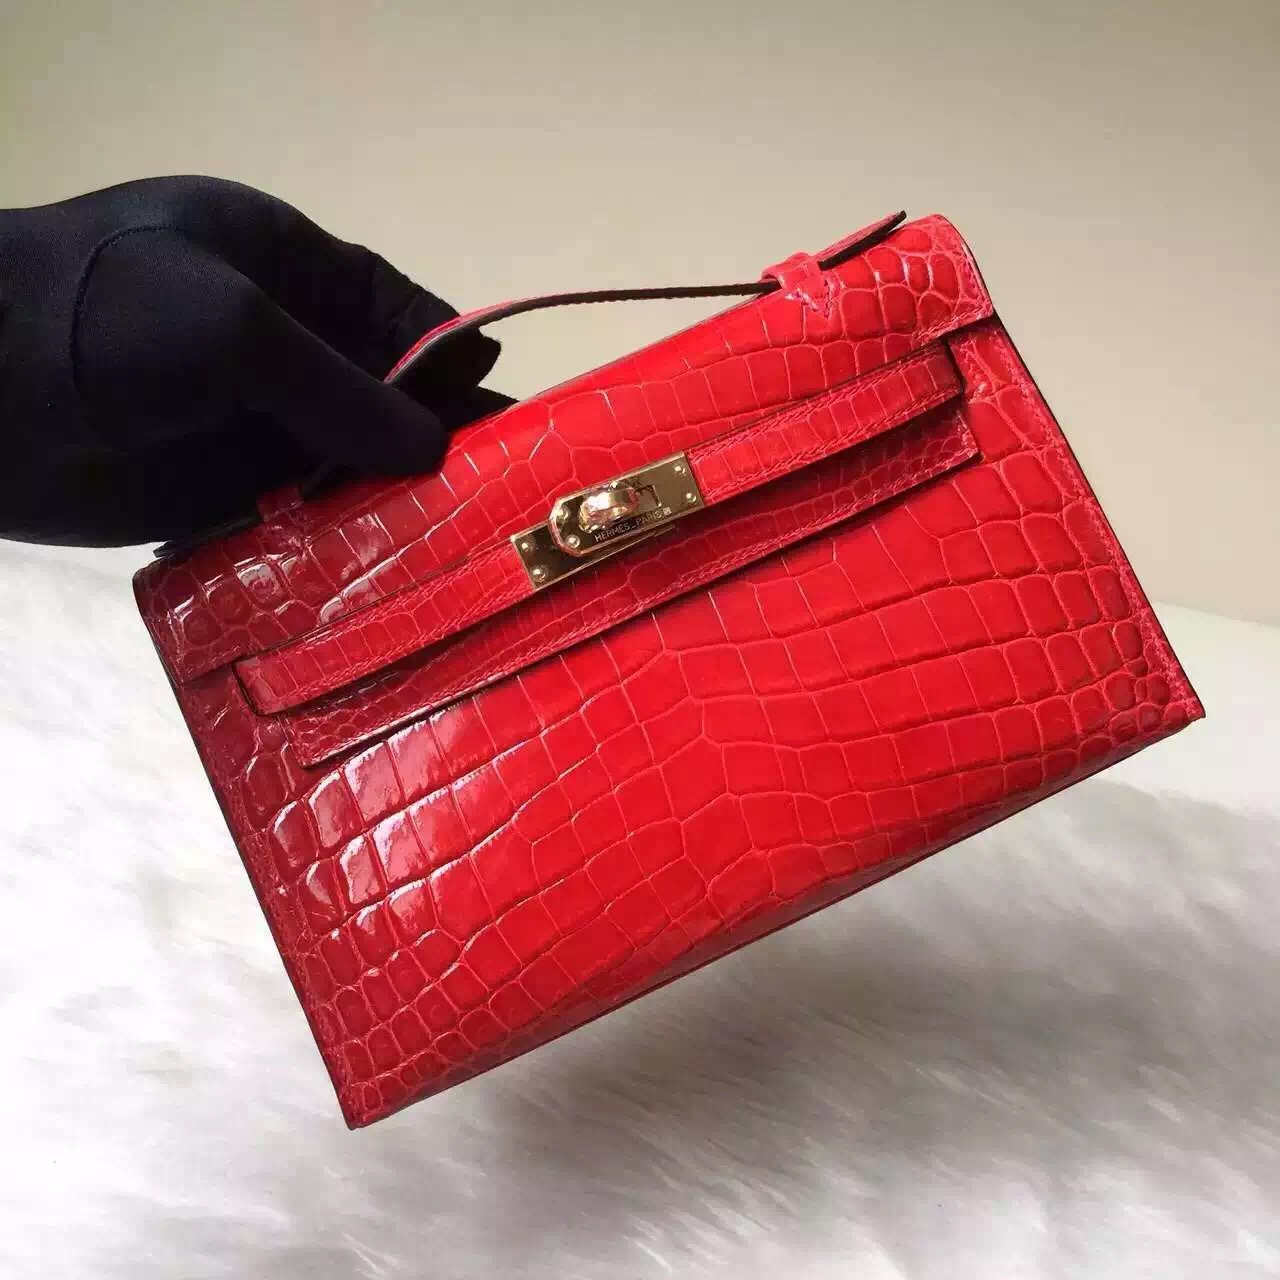 Discount Hermes CK95 Braise Red Crocodile Leather MiniKelly Pochette Bag 22cm